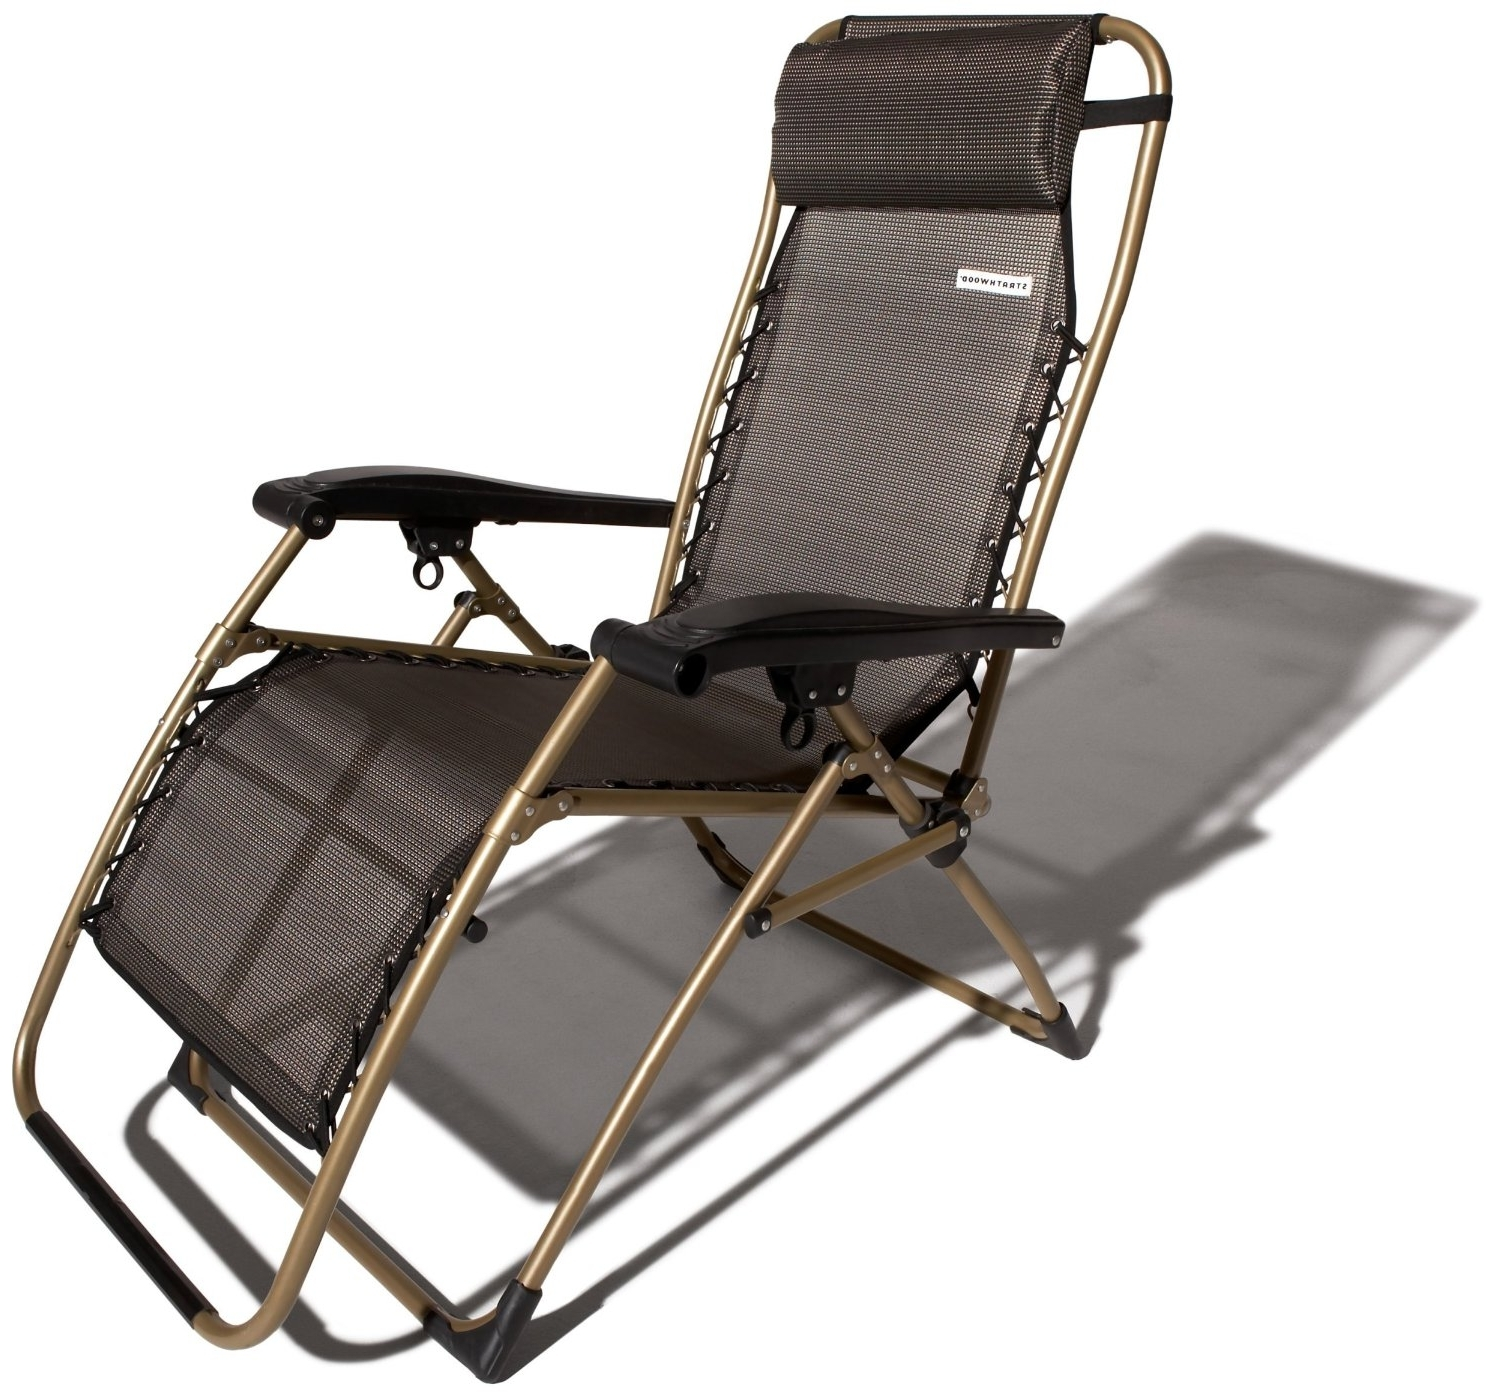 Well Known Adjustable Pool Chaise Lounge Chair Recliners Intended For Elegant Patio Recliner Chair Patio Furniture Chaise Lounge (View 4 of 15)